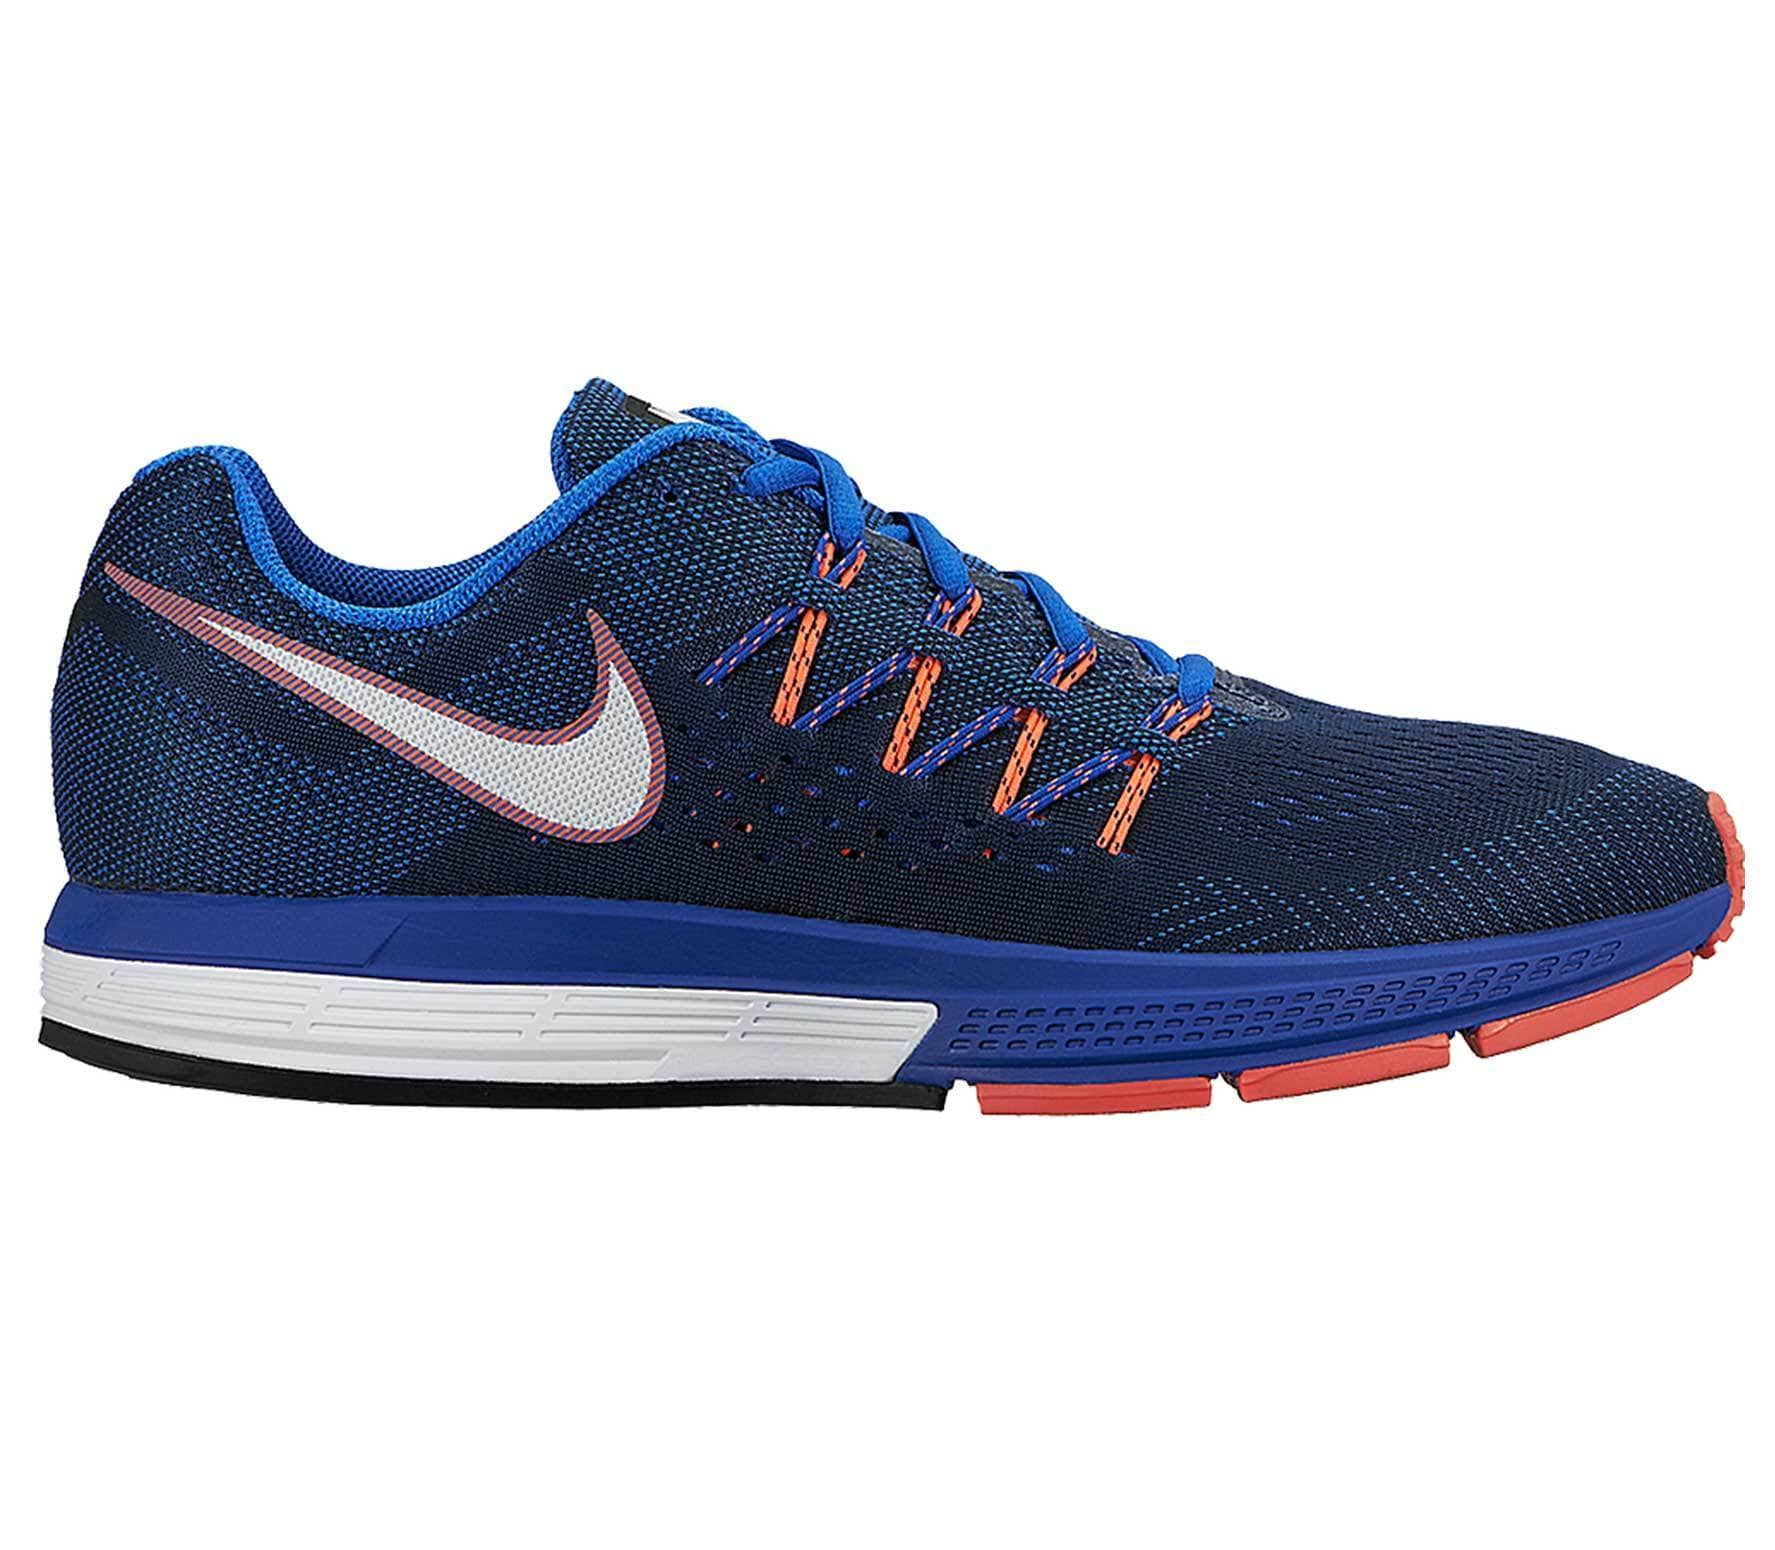 info for 36e51 43aab Nike - Air Zoom Vomero 10 men s running shoes (blue)